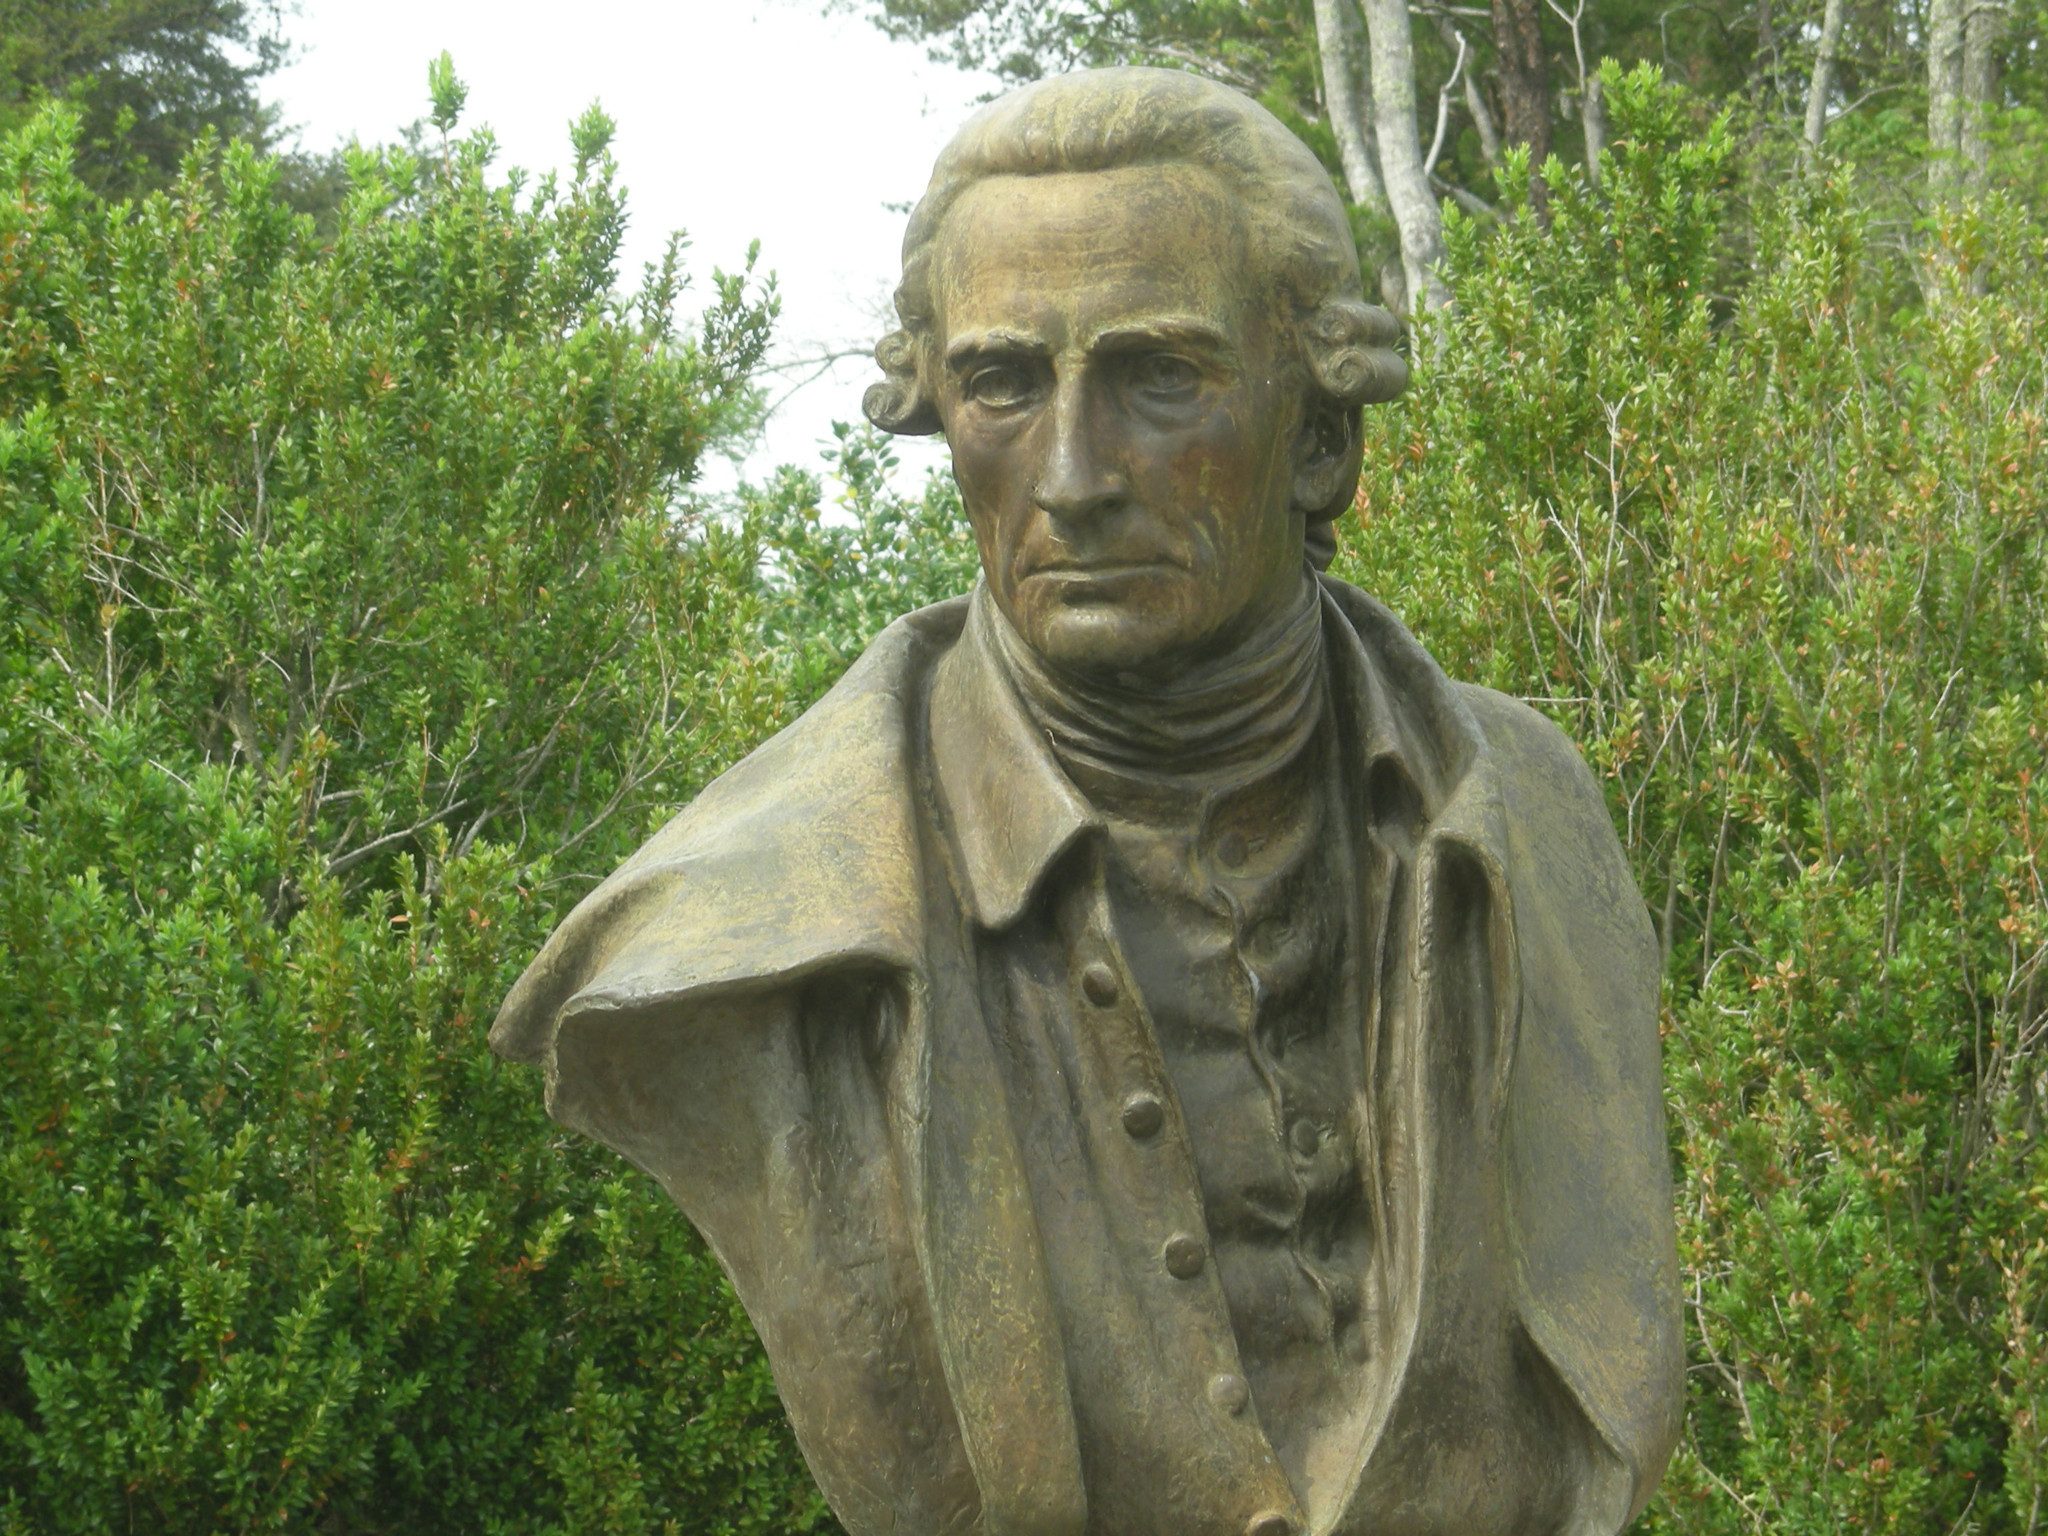 A bust of Patrick Henry, one of the most influential Virginia leaders advocating American independence at the Red Hill Patrick Henry National Memorial in Charotte County, Virginia.